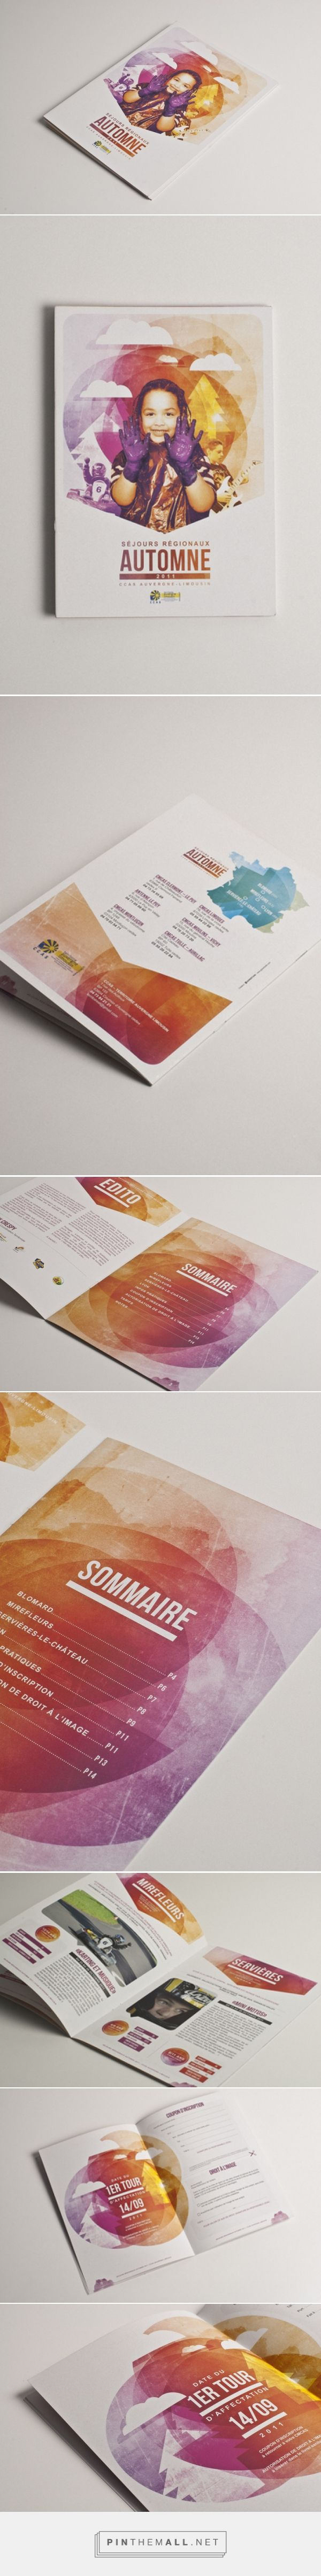 Coloring, design and illustration ideas for a #booklet or #brochure